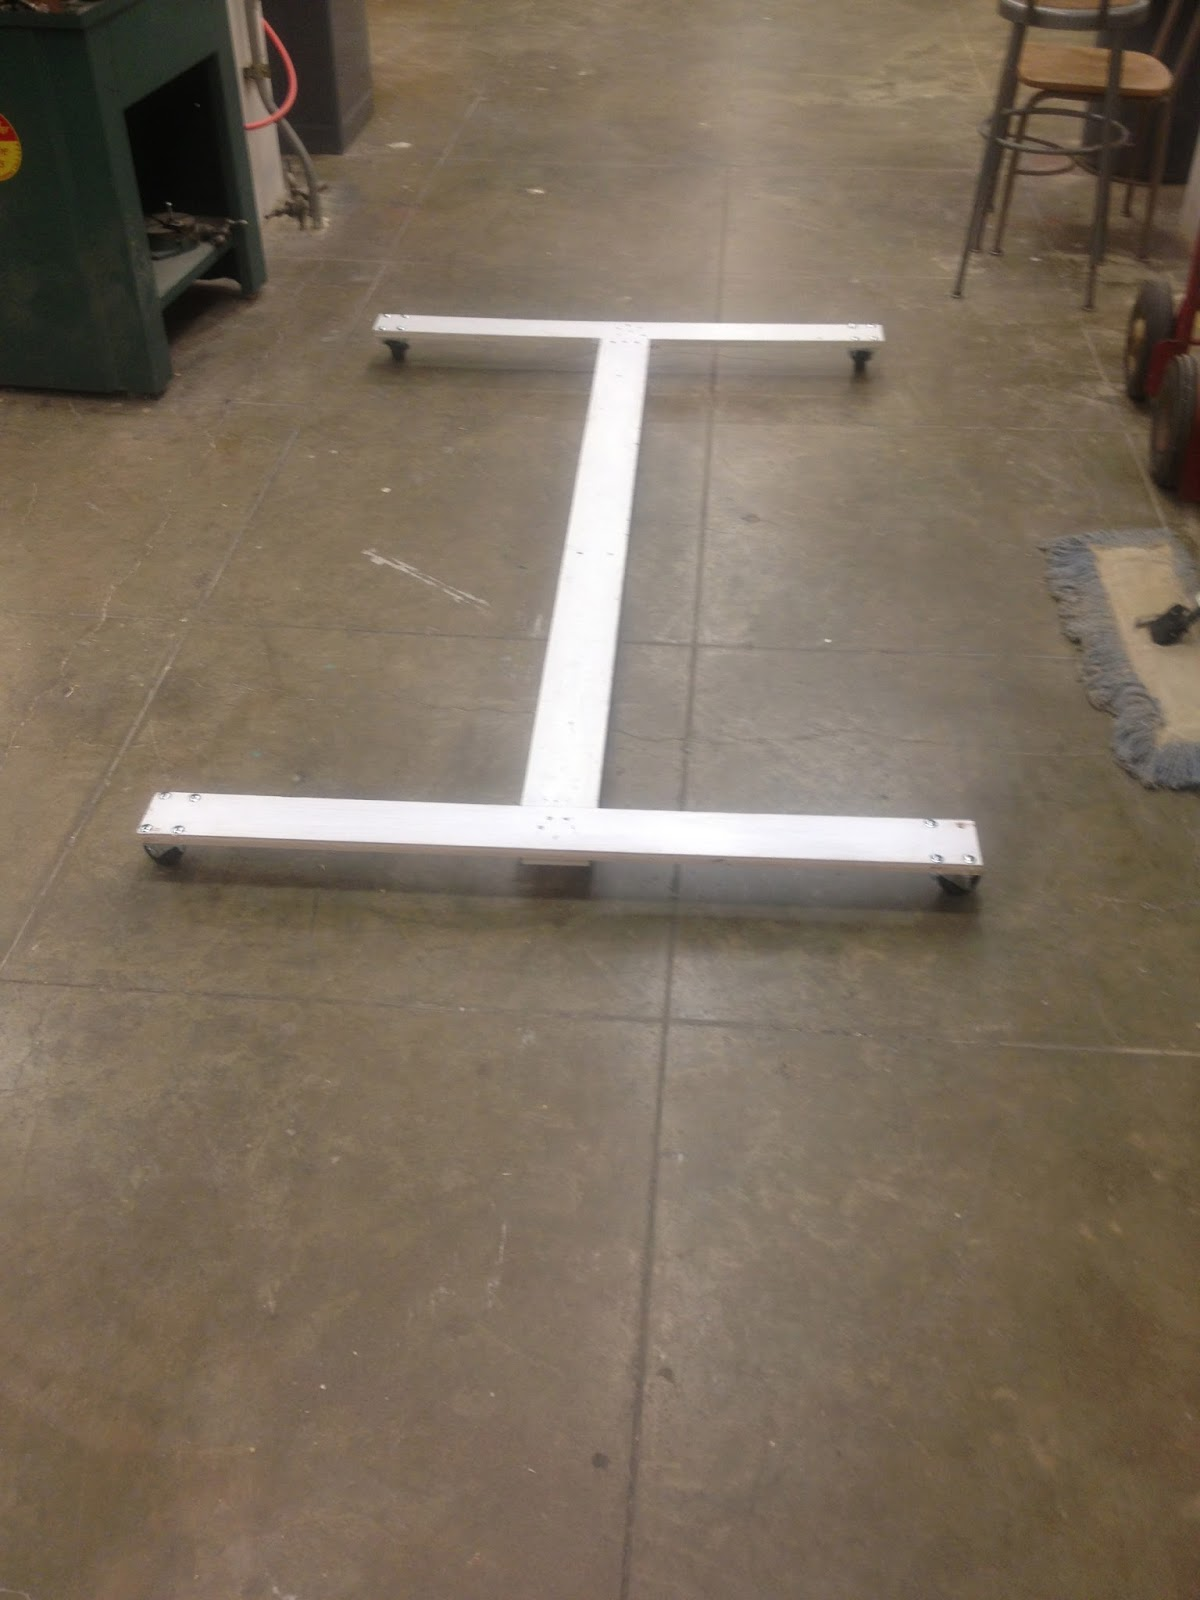 Three long wooden pieces are placed together in an I shape to after being painted. The pieces are put back together in order to reassemble them.